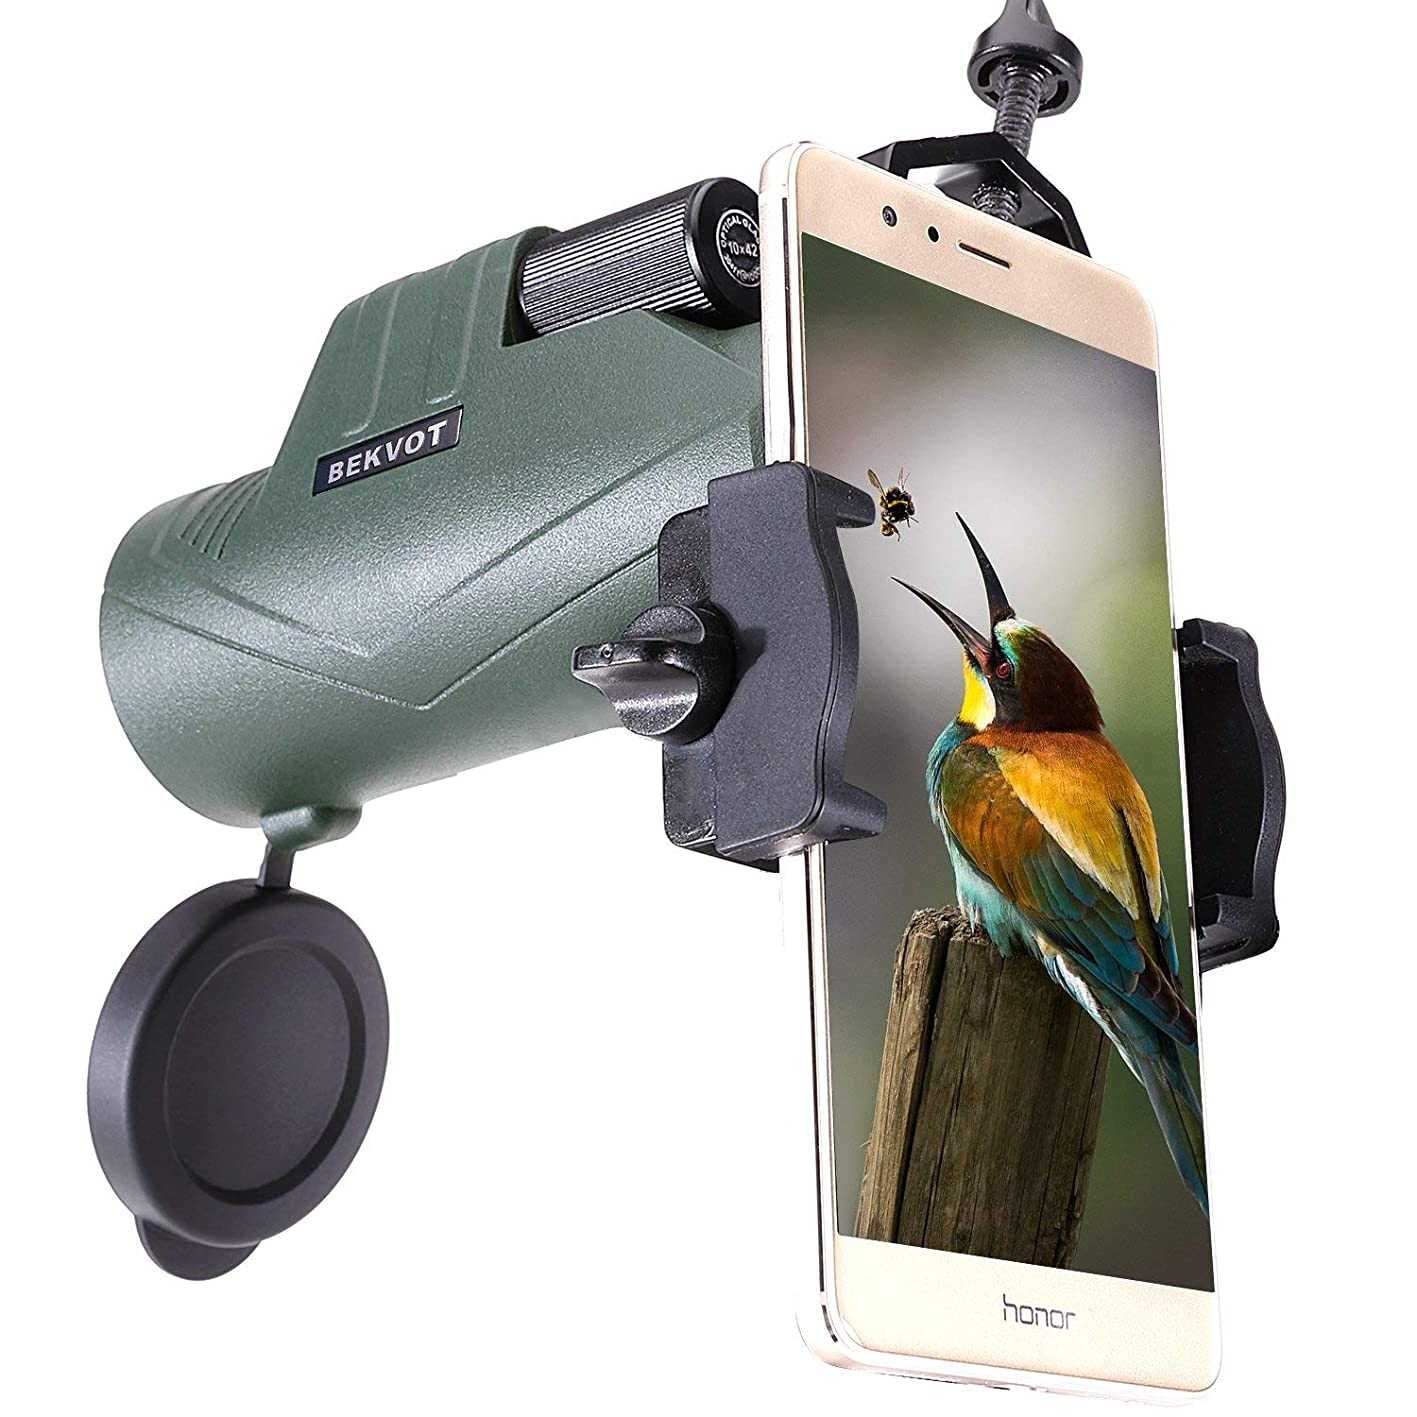 Monocular Telescope for Adults, NOCOEX High Power Bak4 Prism Monocular Waterproof Monocular Scope with Smartphone Adapter for Birdwatching Hunting Hiking Camping Sightseeing (10X42) brzwpabuwdi226